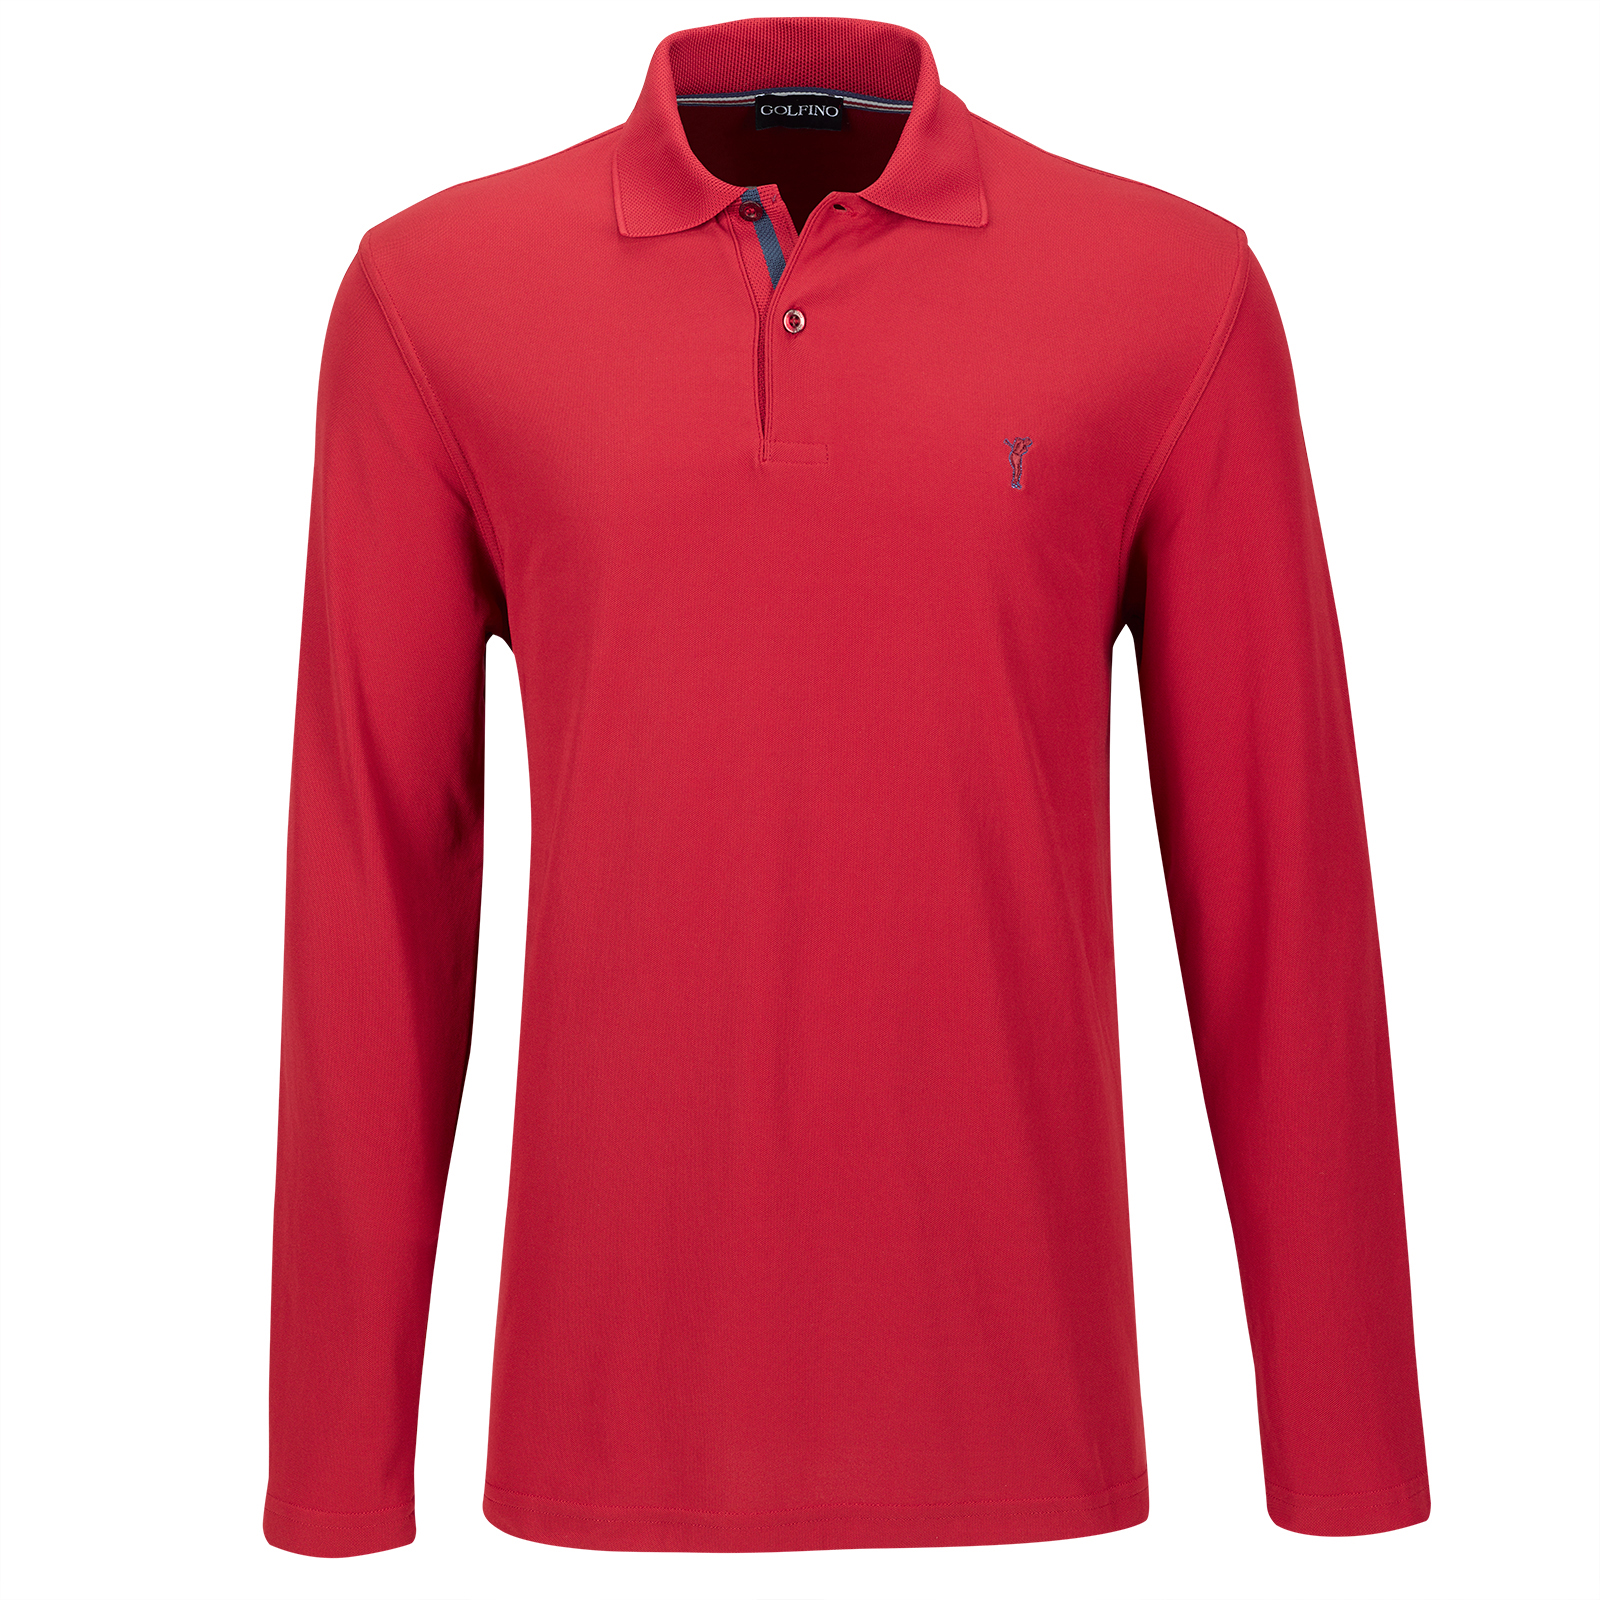 Regular Fit Herren Golfpolo mit Moisture Management Funktion